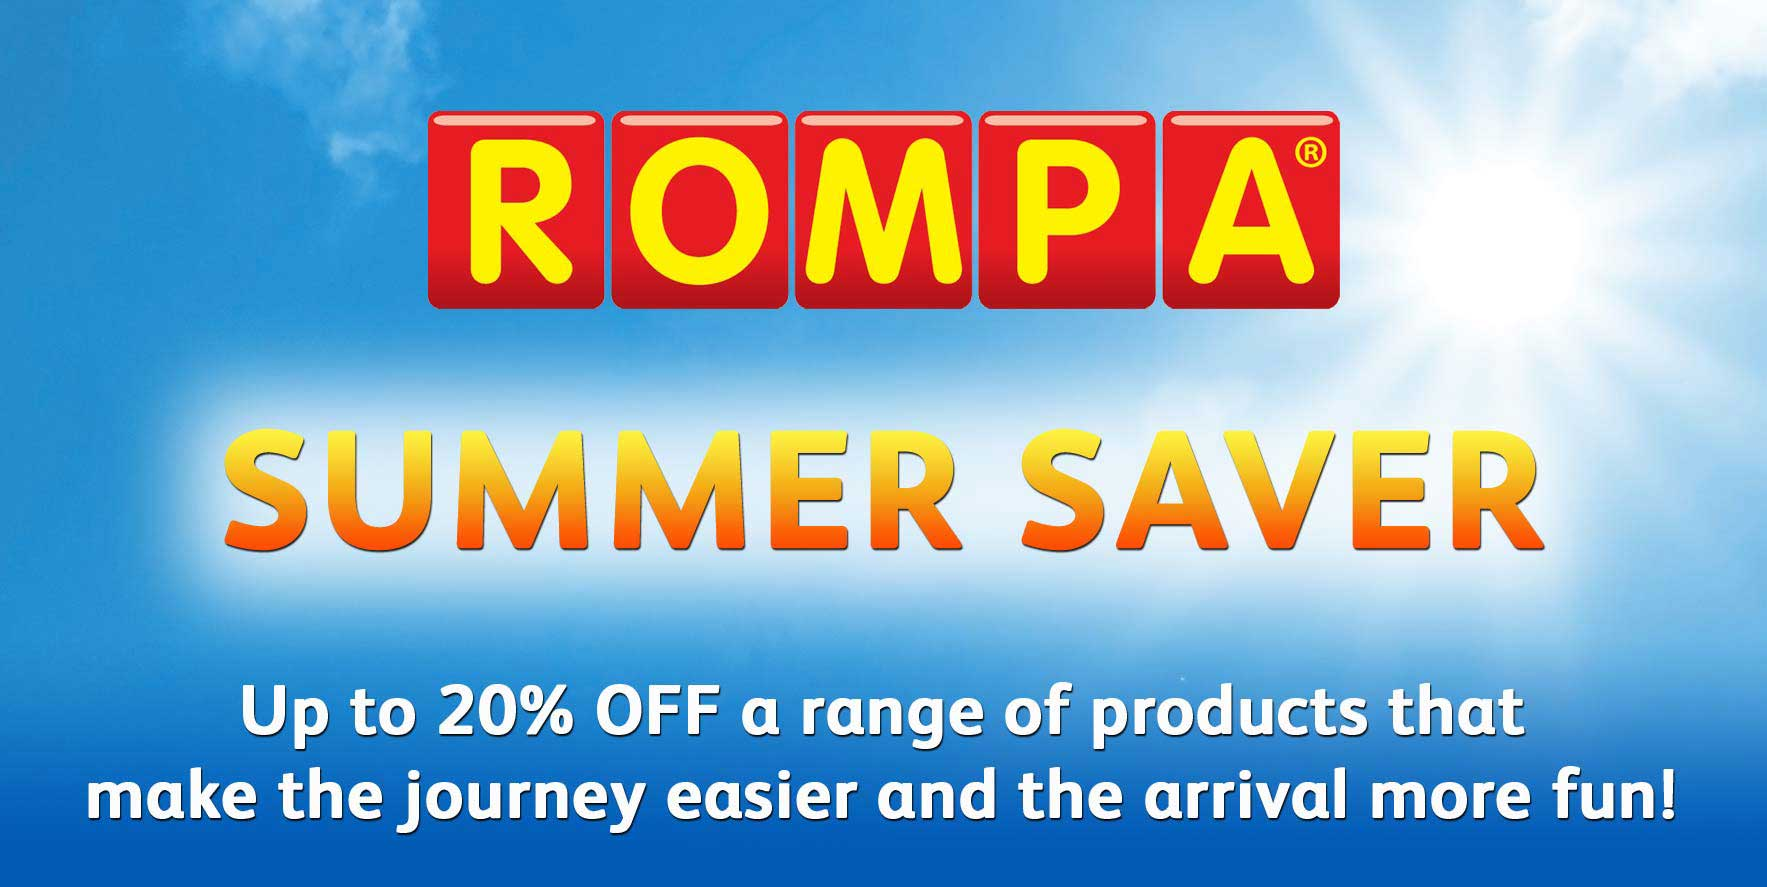 Rompa Summer Saver